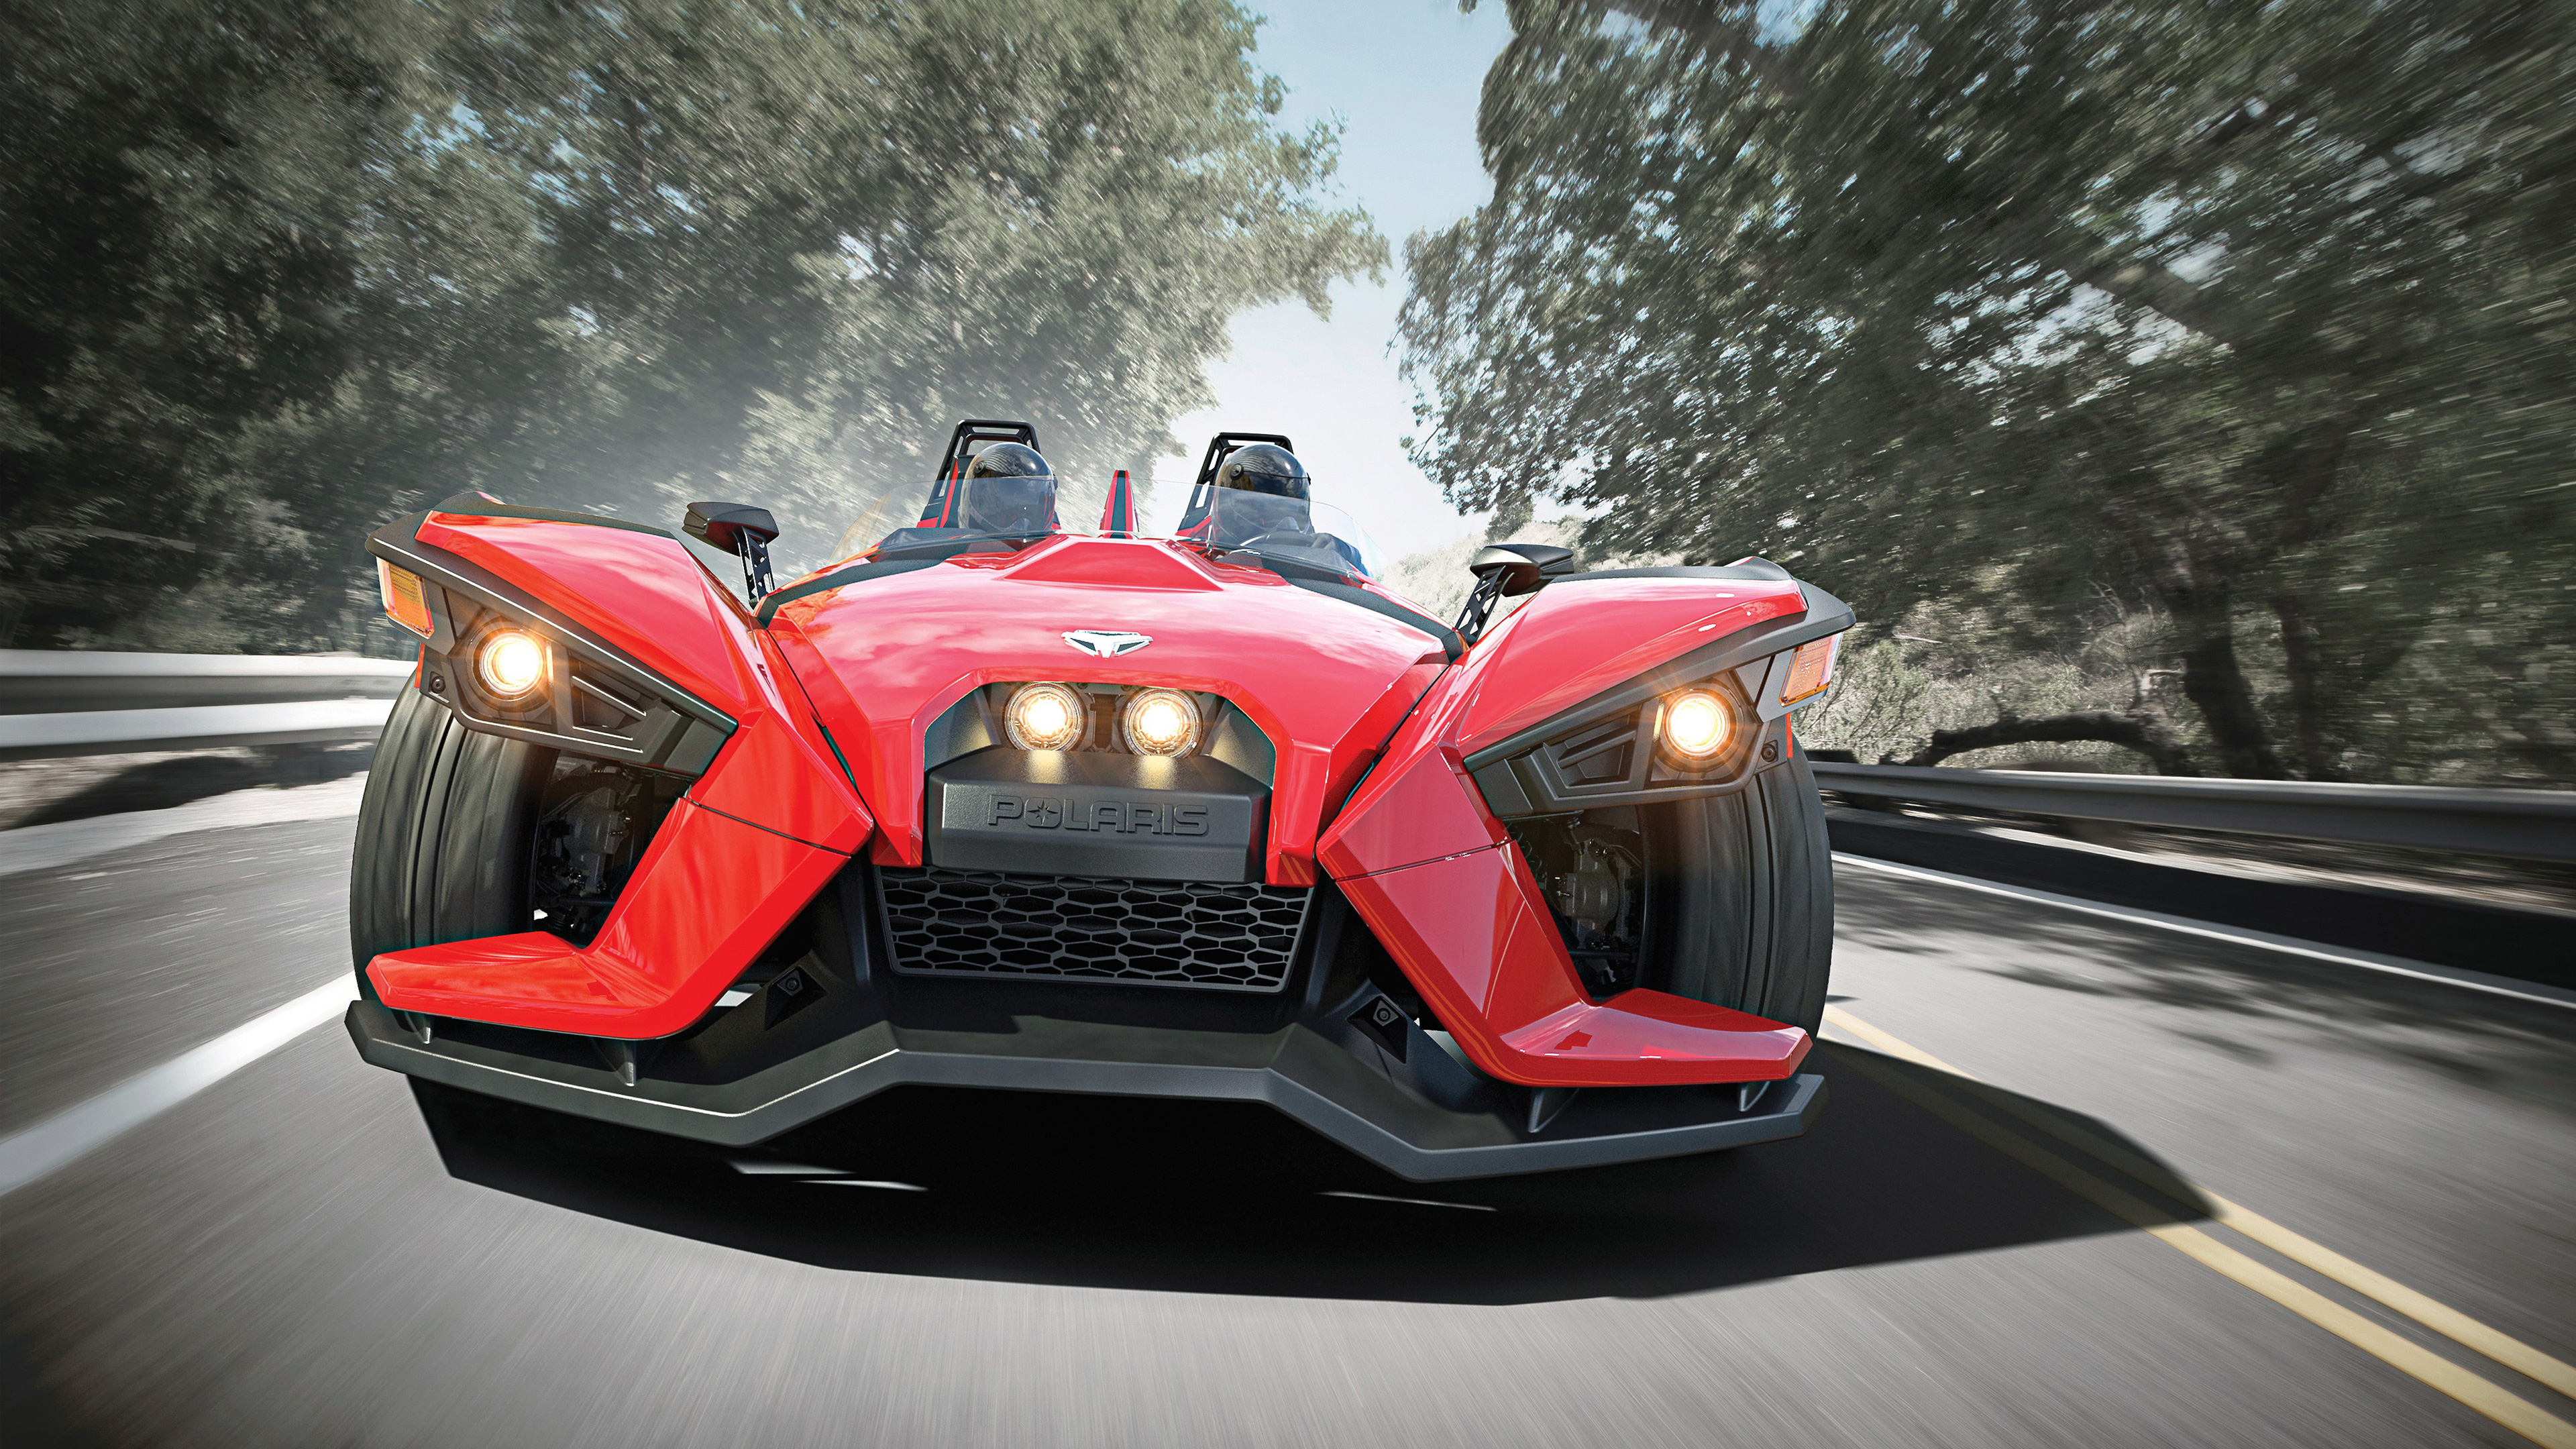 Polaris Slingshot Wallpaper Hd Car Wallpapers Id 6513